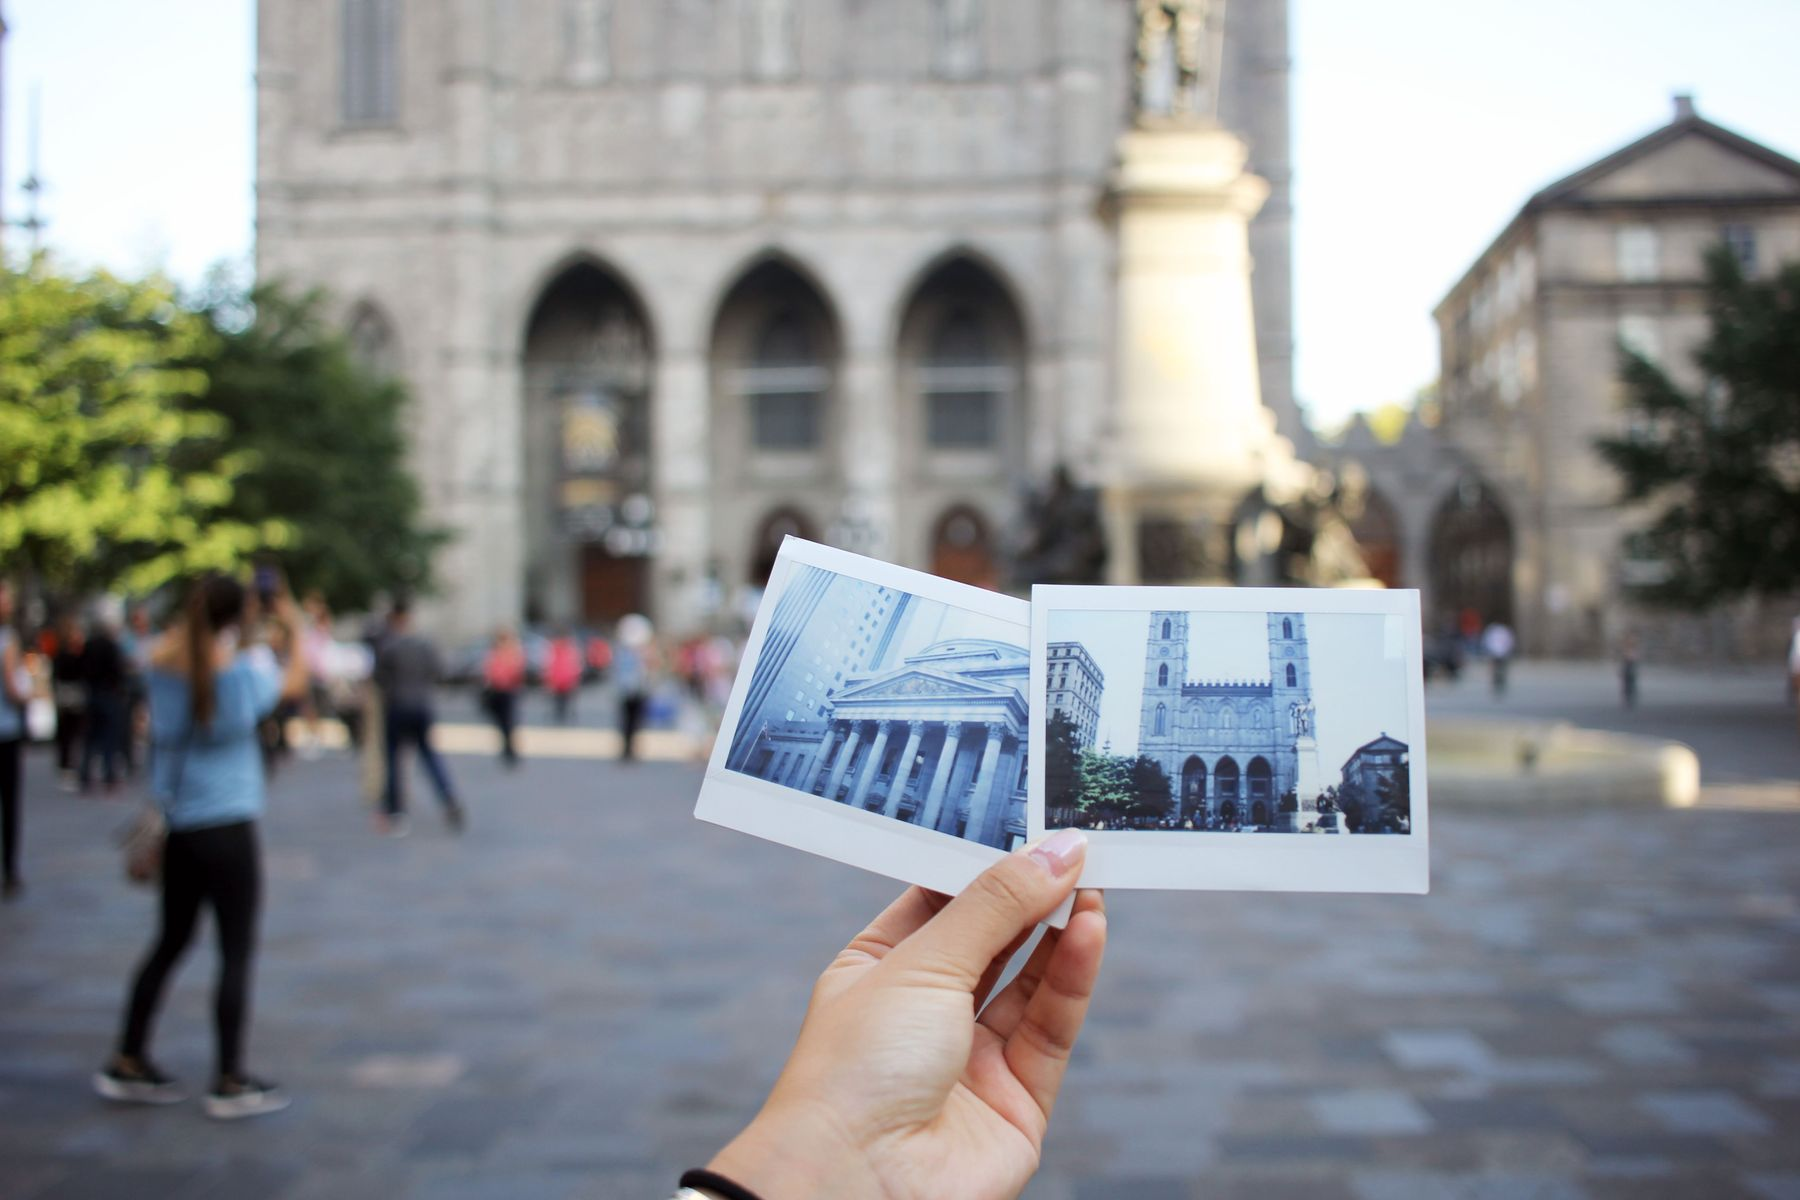 Person holding two polaroid images of Montreal architecture in front of Notre Dame Cathedral in the old port of Montreal, a great place to visit in Canada